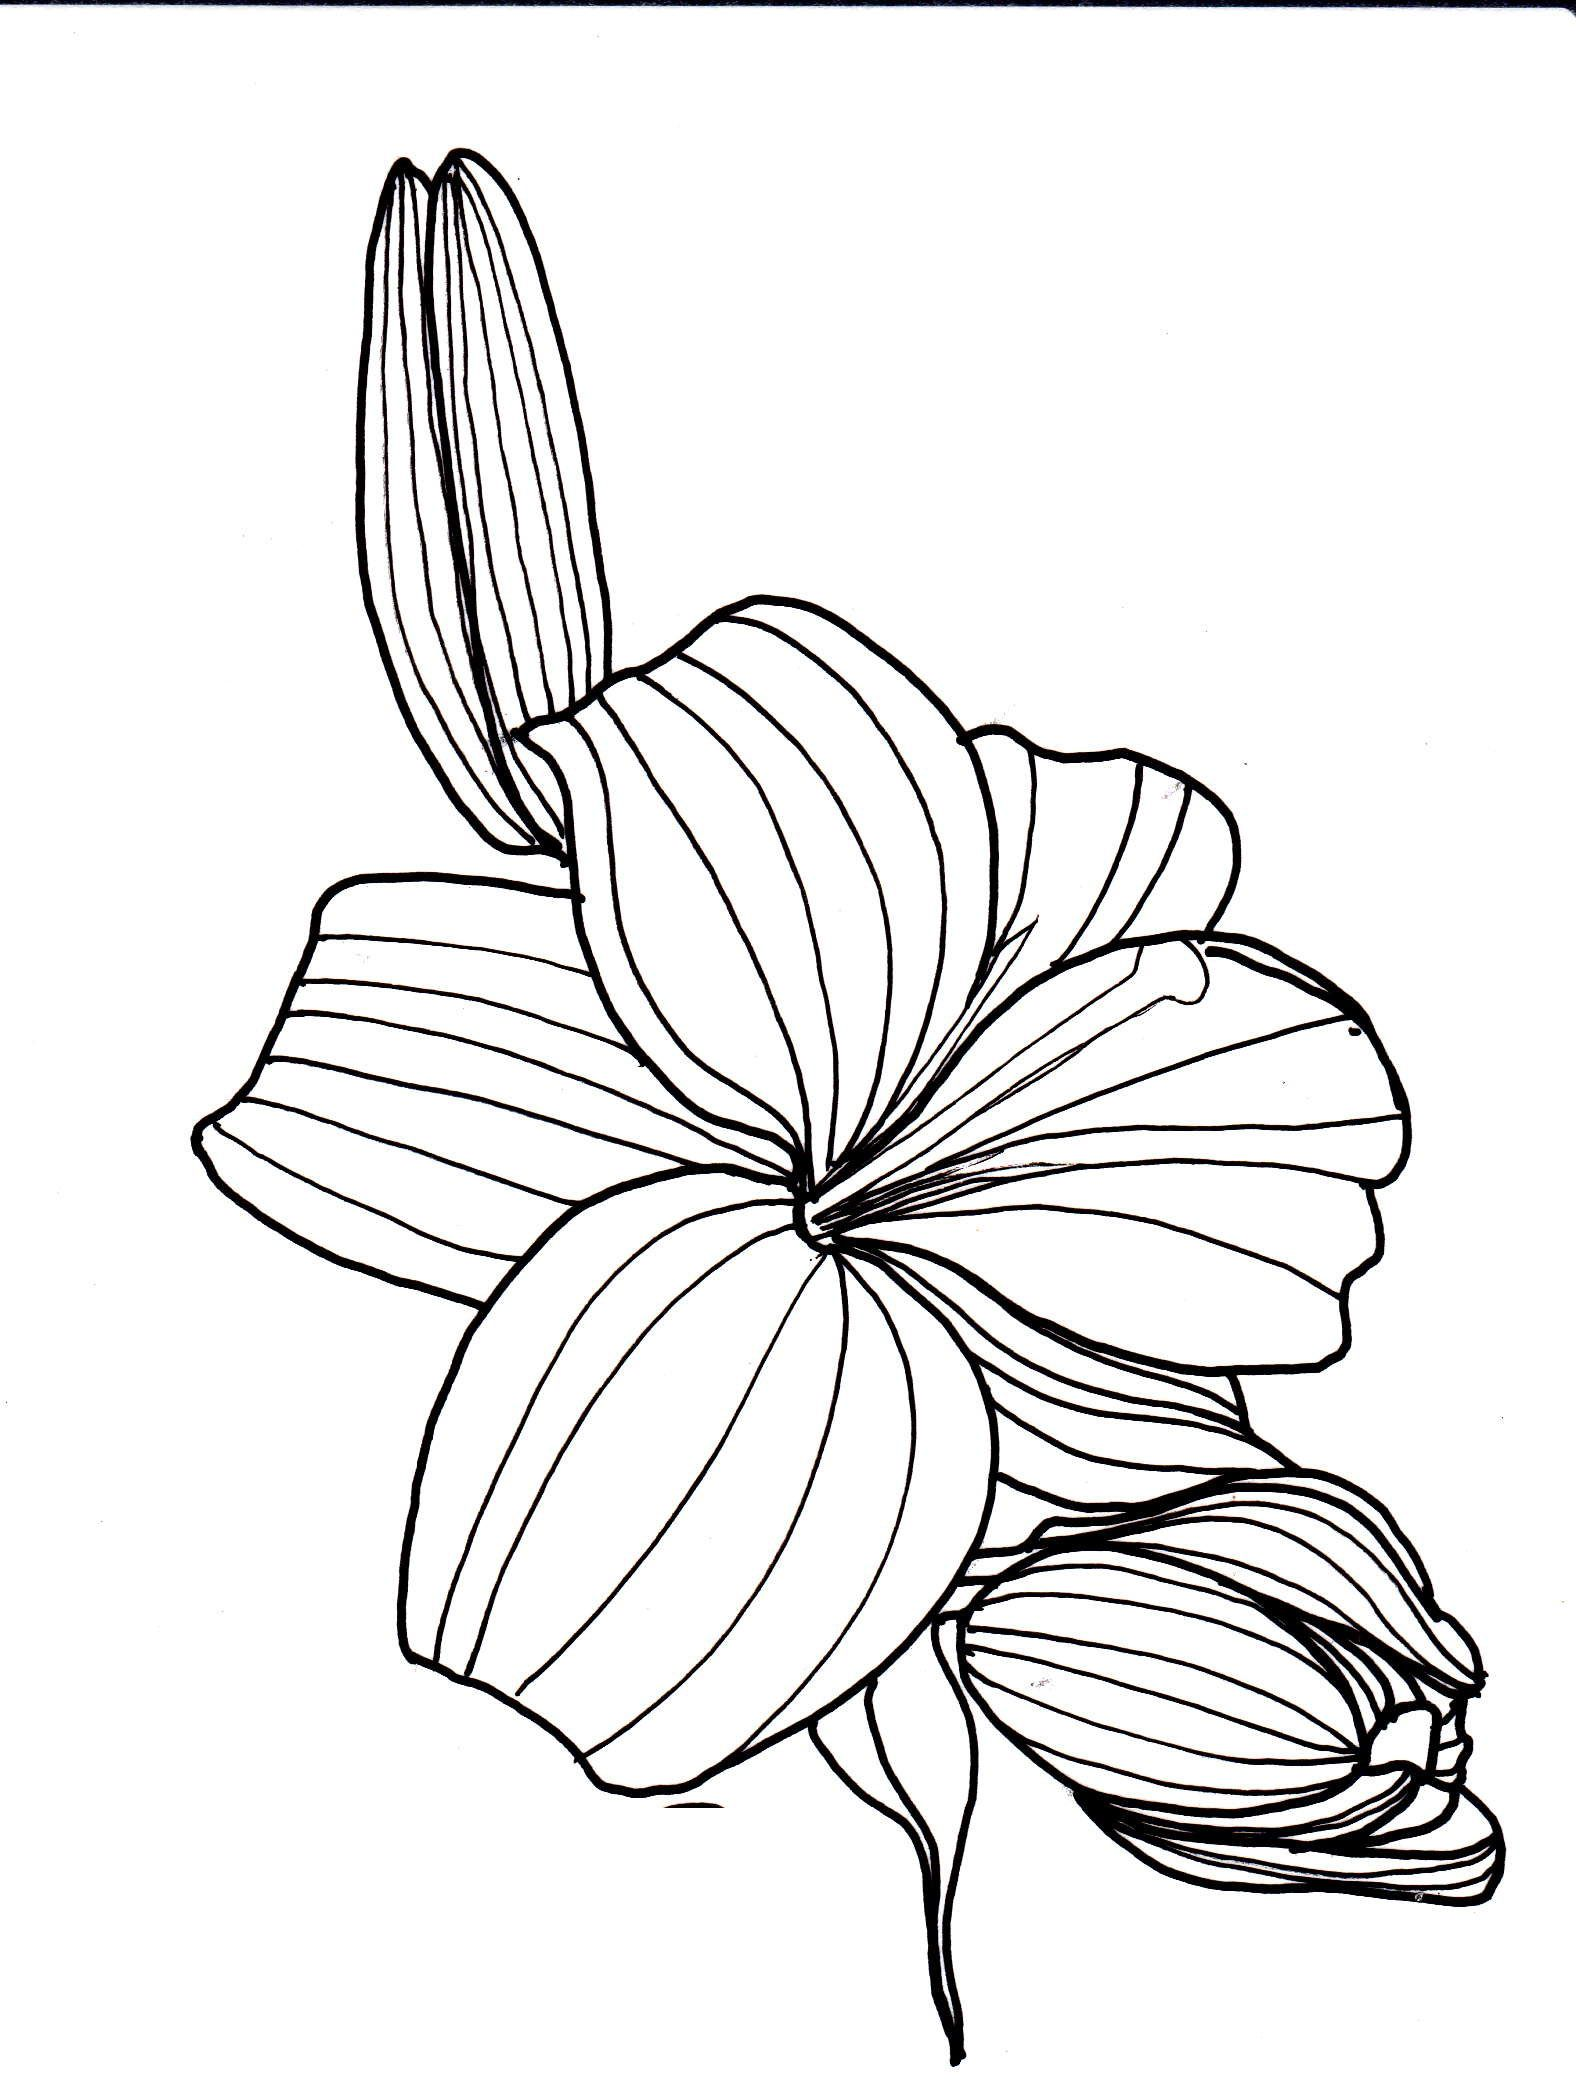 Line Drawing Of Lily Flower : Line drawing flowers lily drawings pinterest